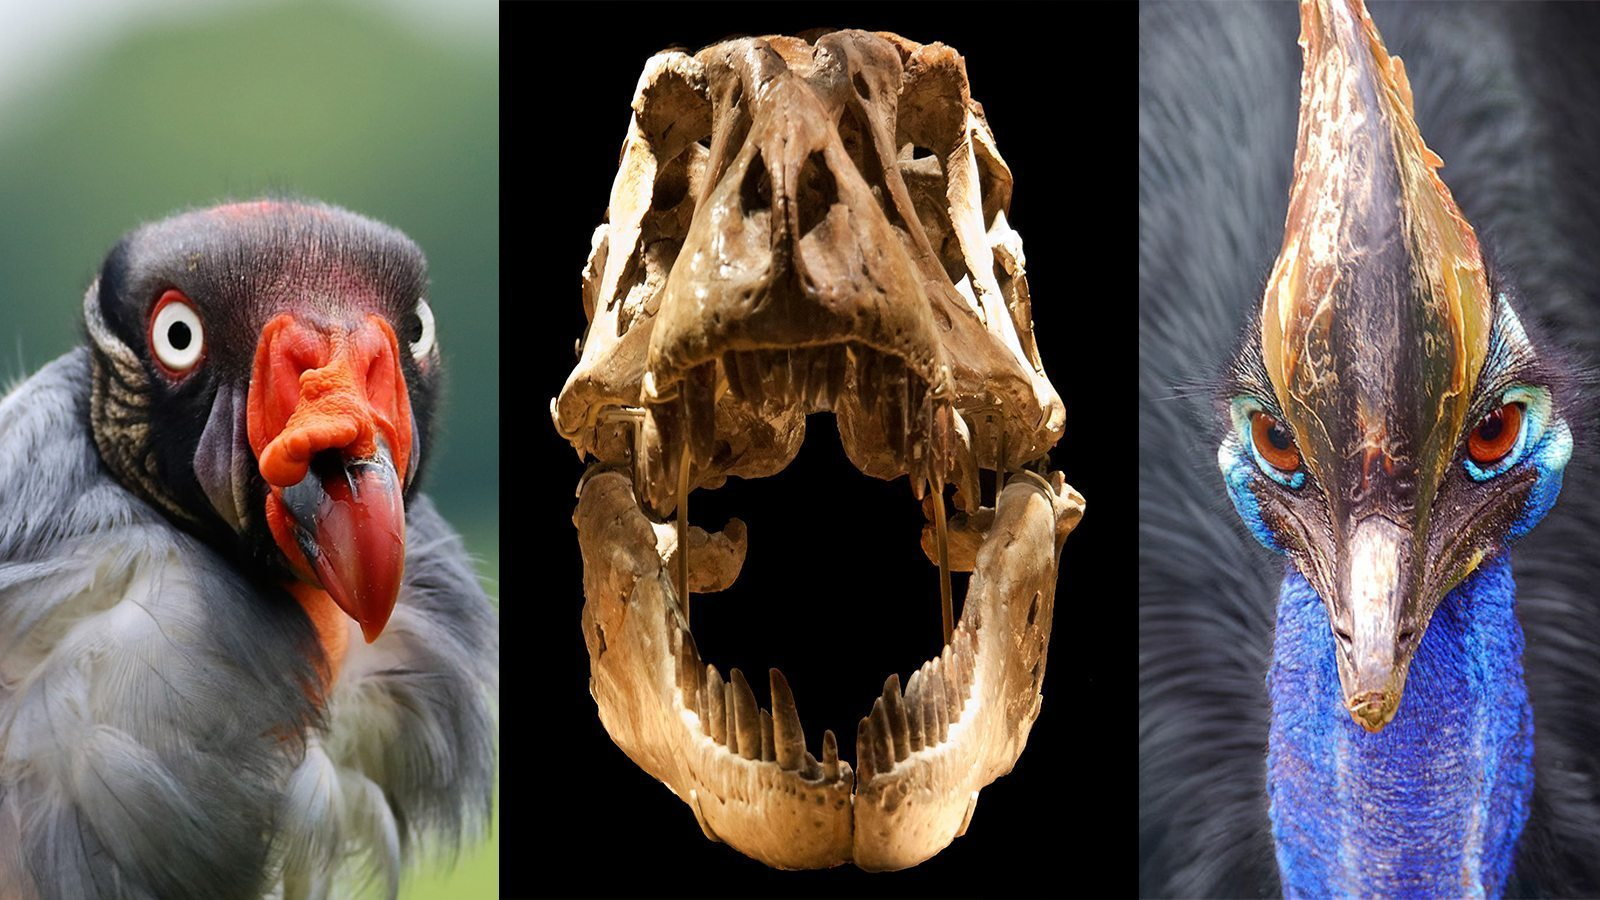 Image: Birds and Dinosaurs from left to right a King Vulture, a T-Rex skull, and a Cassowary with systems of the body similar to those of the dinosaurs before